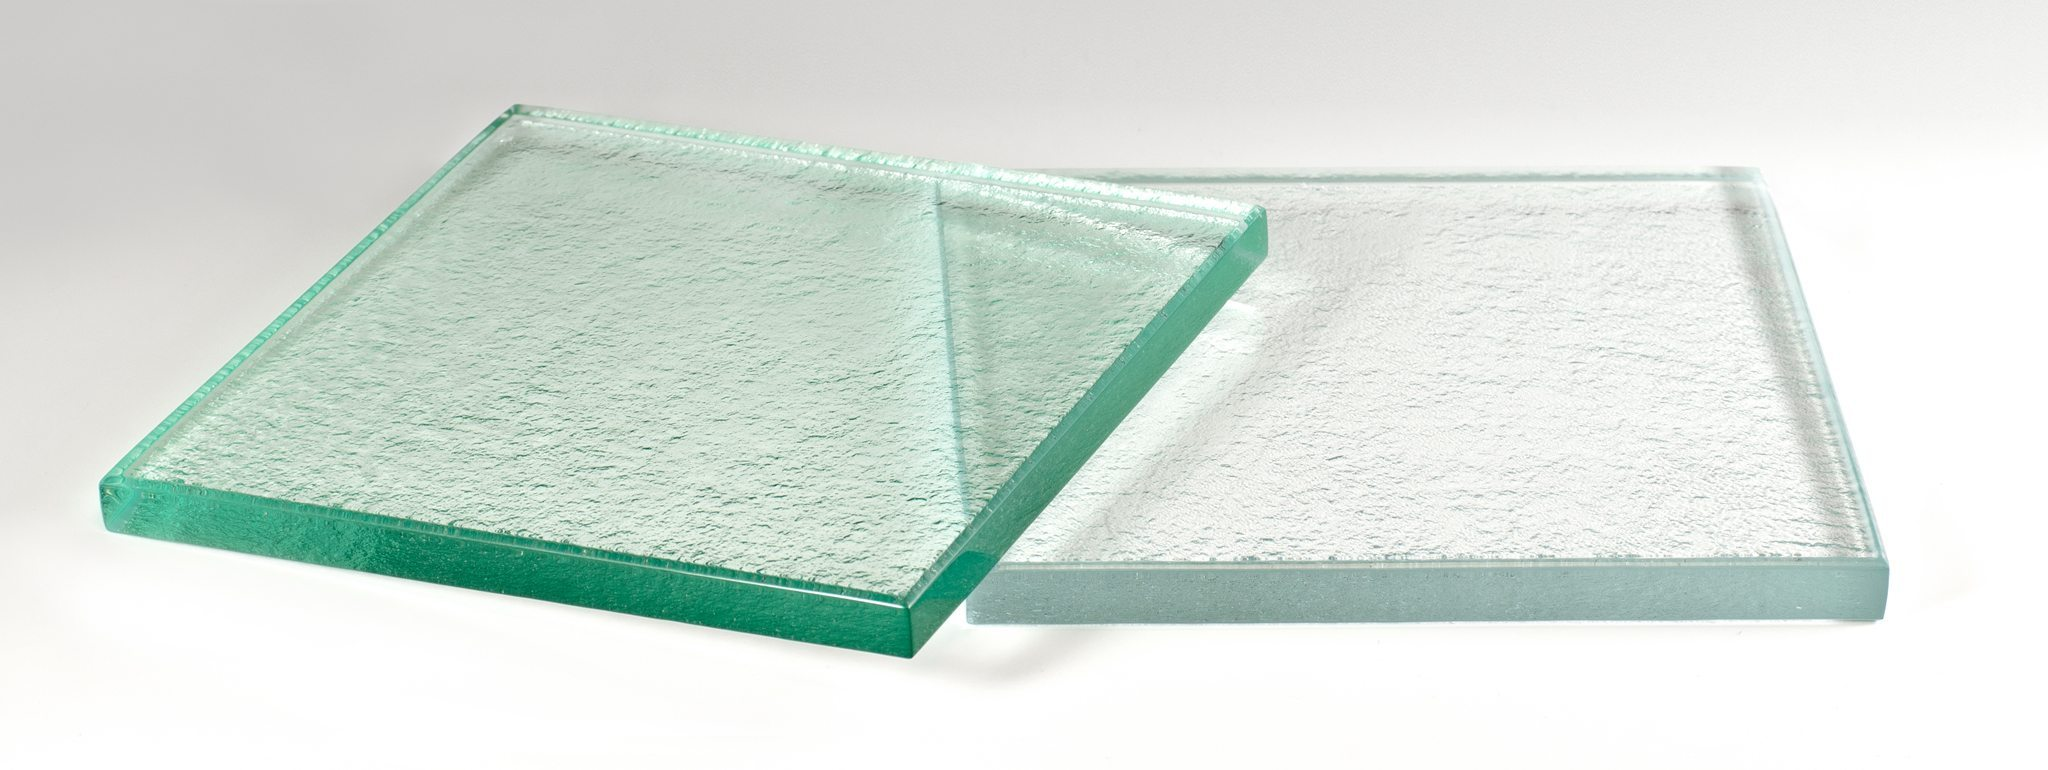 Kiln Formed Cast Glass Types